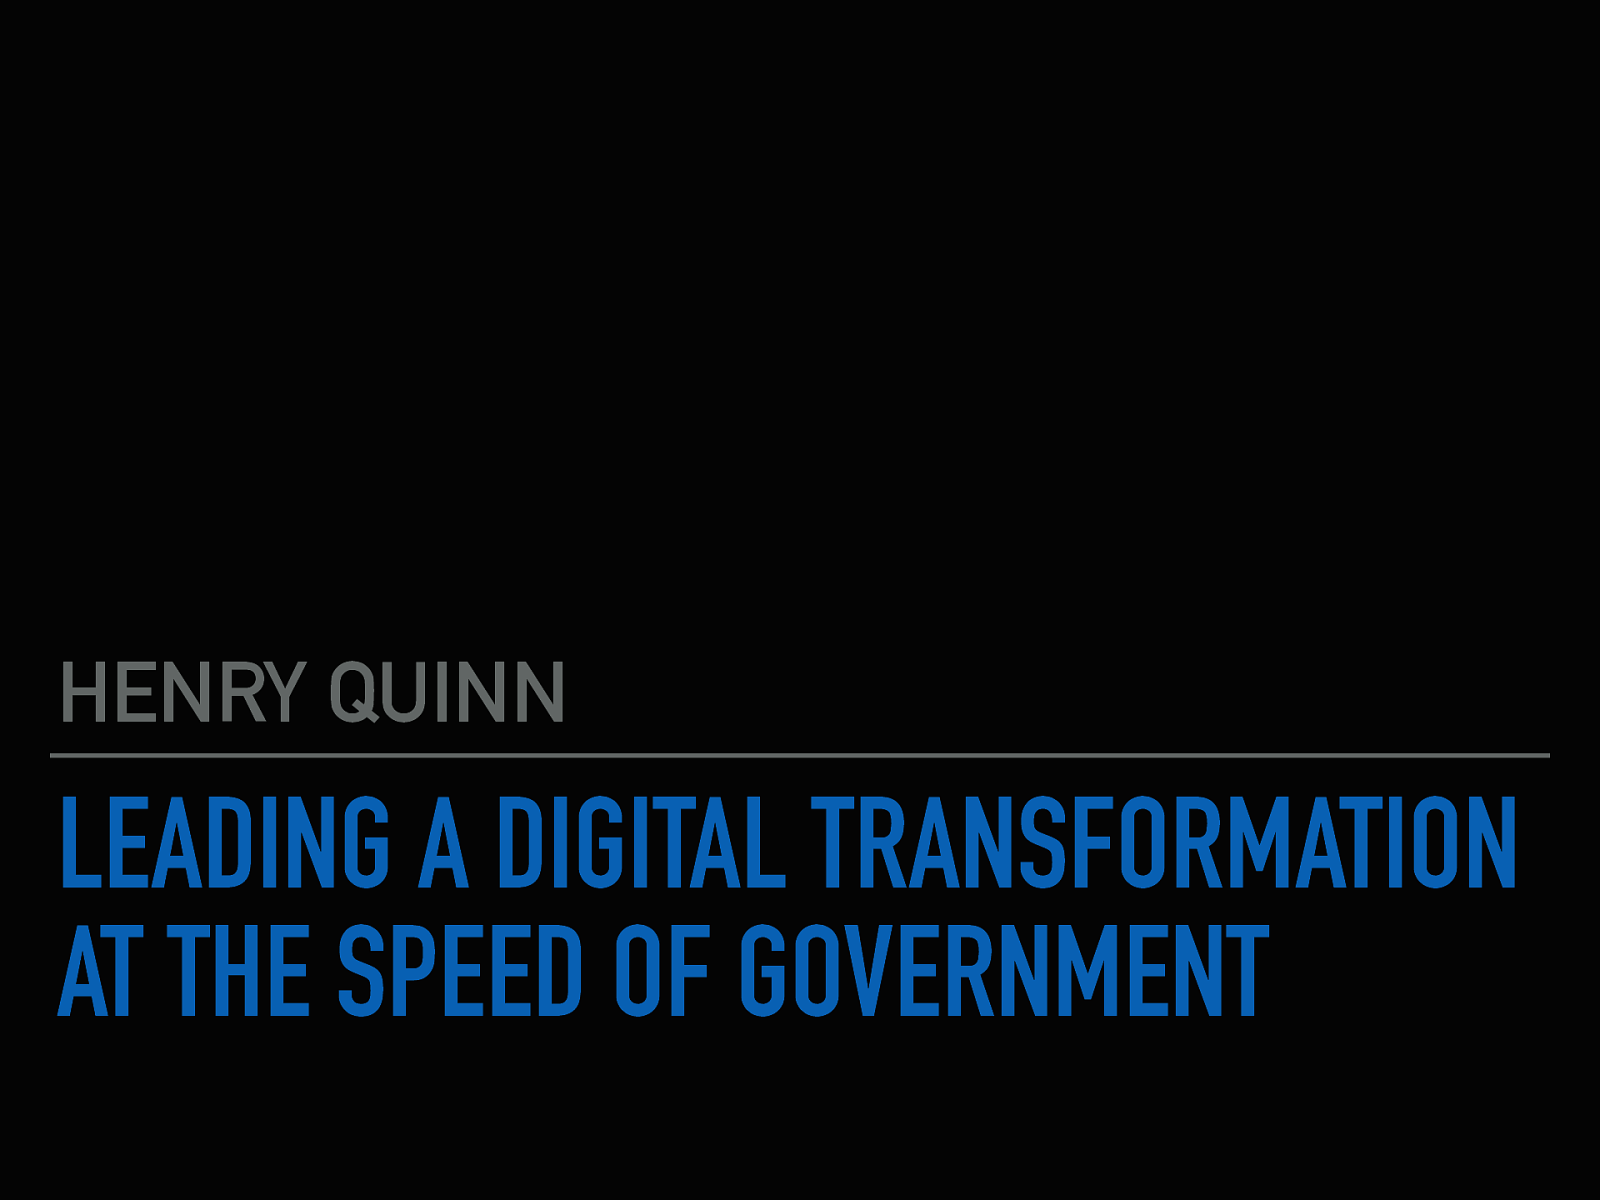 Leading a Digital Transformation at the Speed of Government